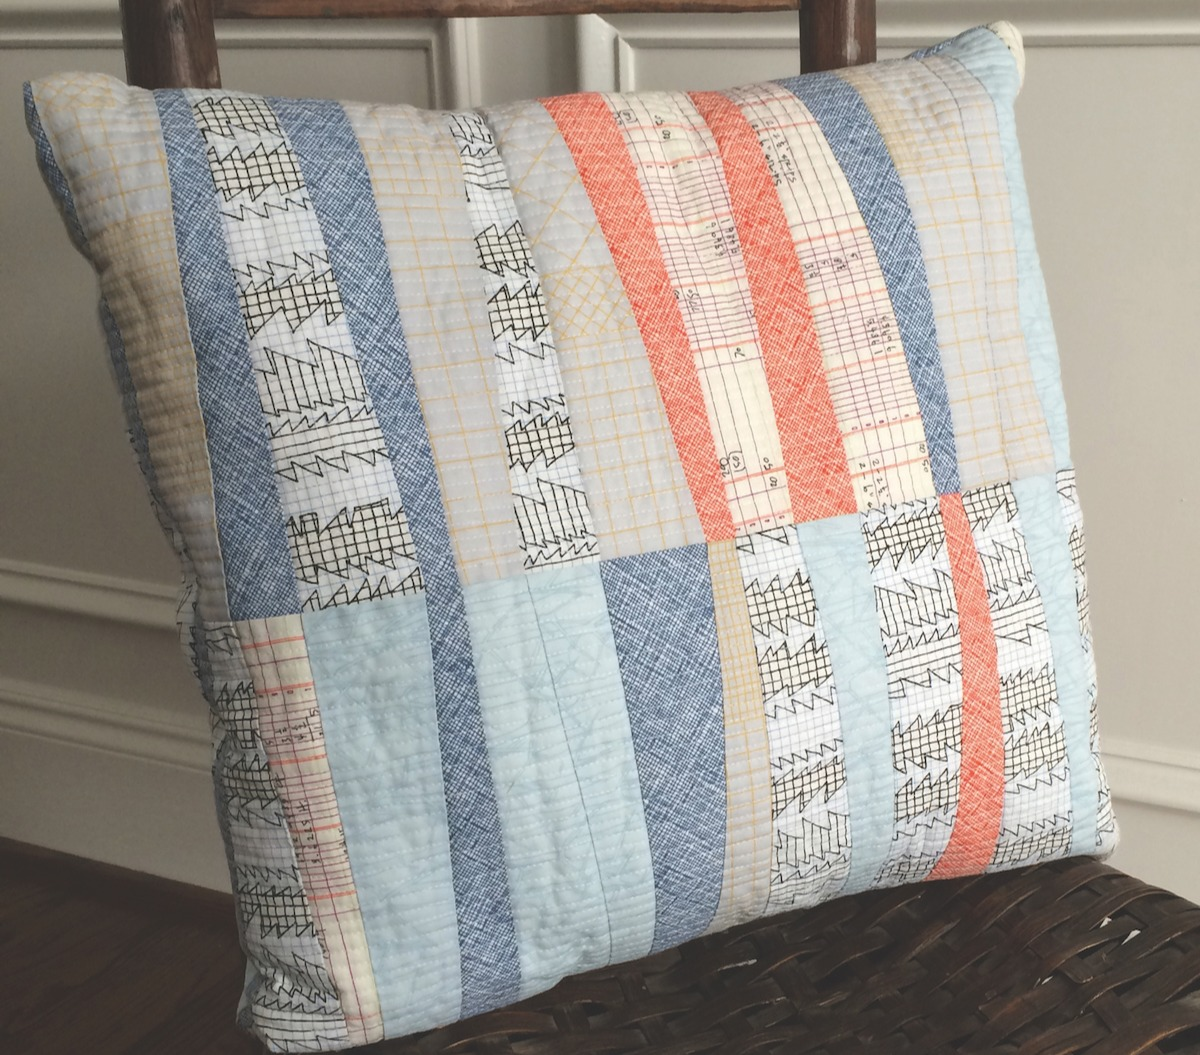 Scrappy throw pillow made with wedge shapes on a wooden chair.